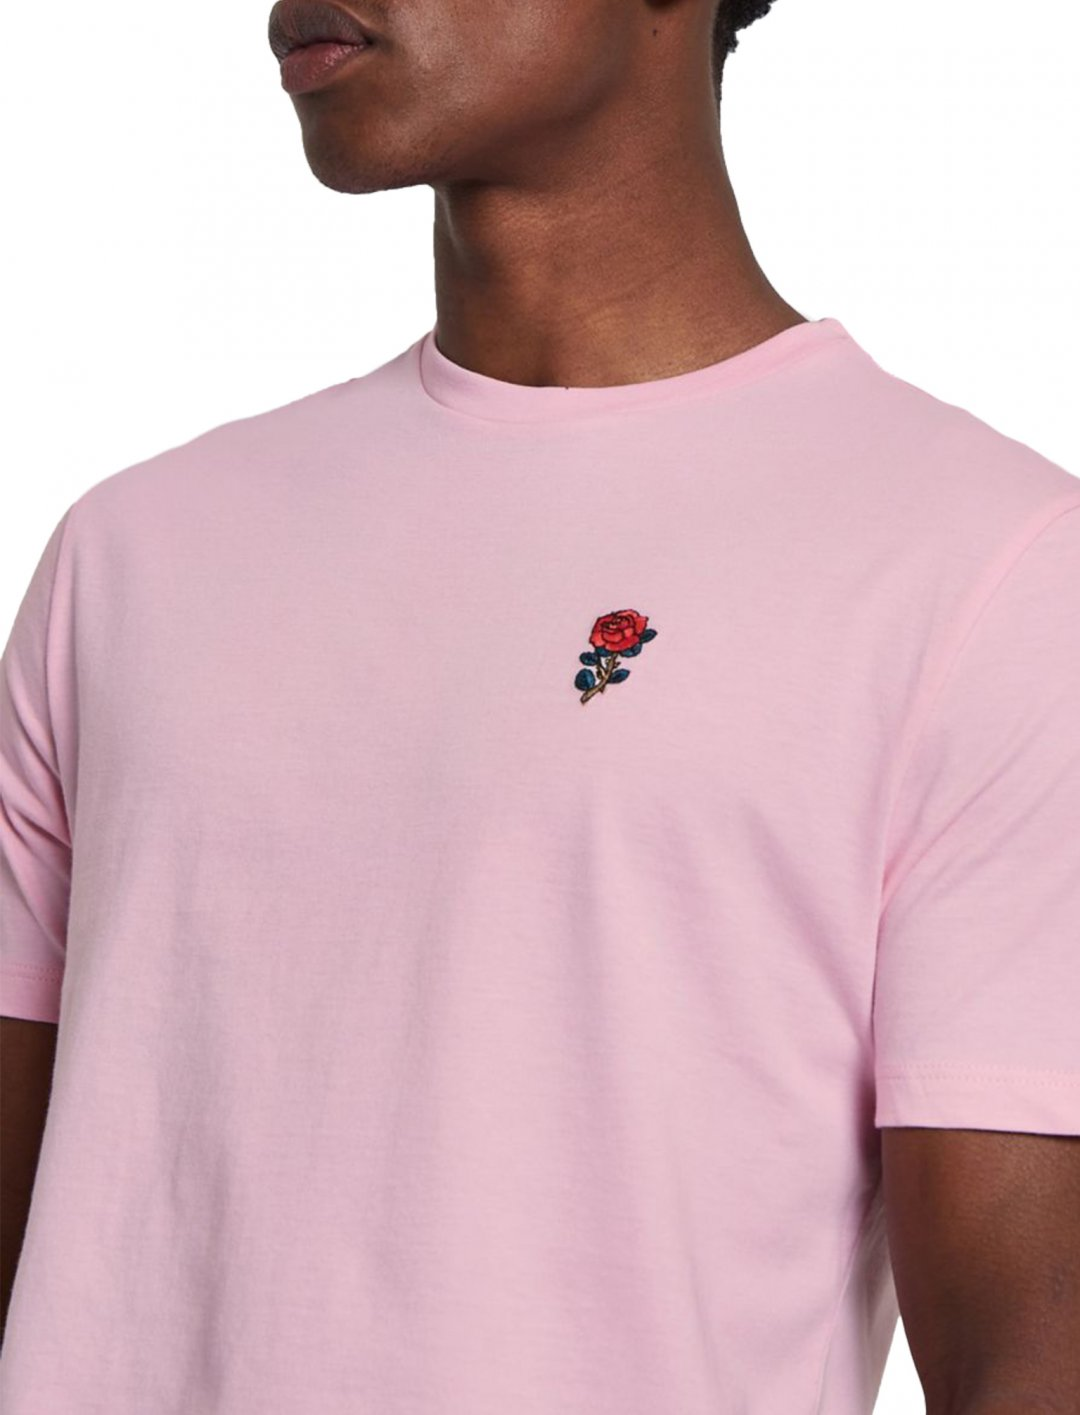 "River Island Pink T-Shirt {""id"":5,""product_section_id"":1,""name"":""Clothing"",""order"":5} River Island"